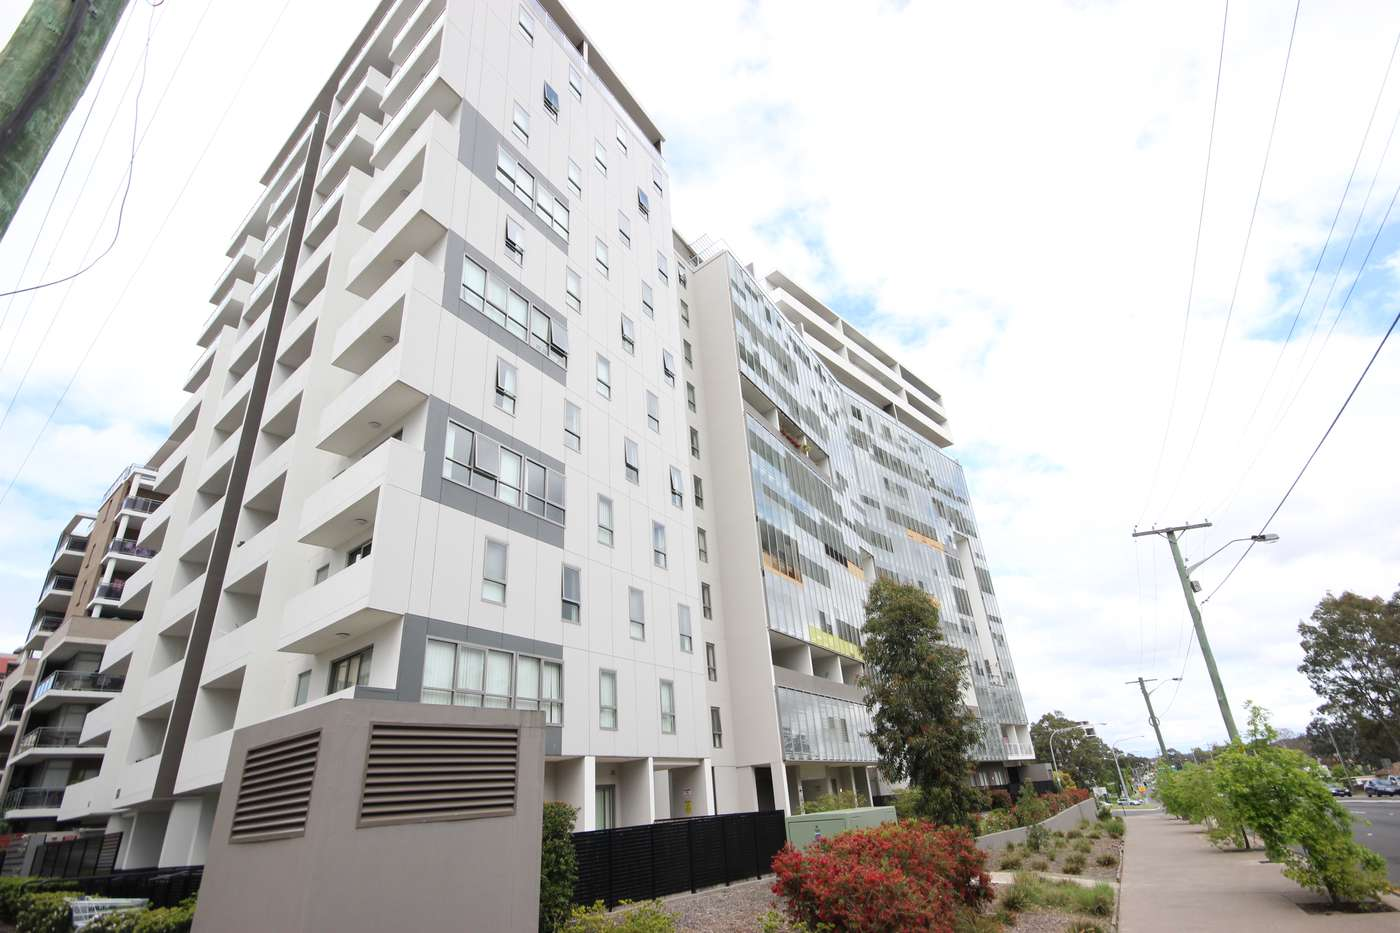 Main view of Homely unit listing, 5/1 Browne Parade, Warwick Farm, NSW 2170